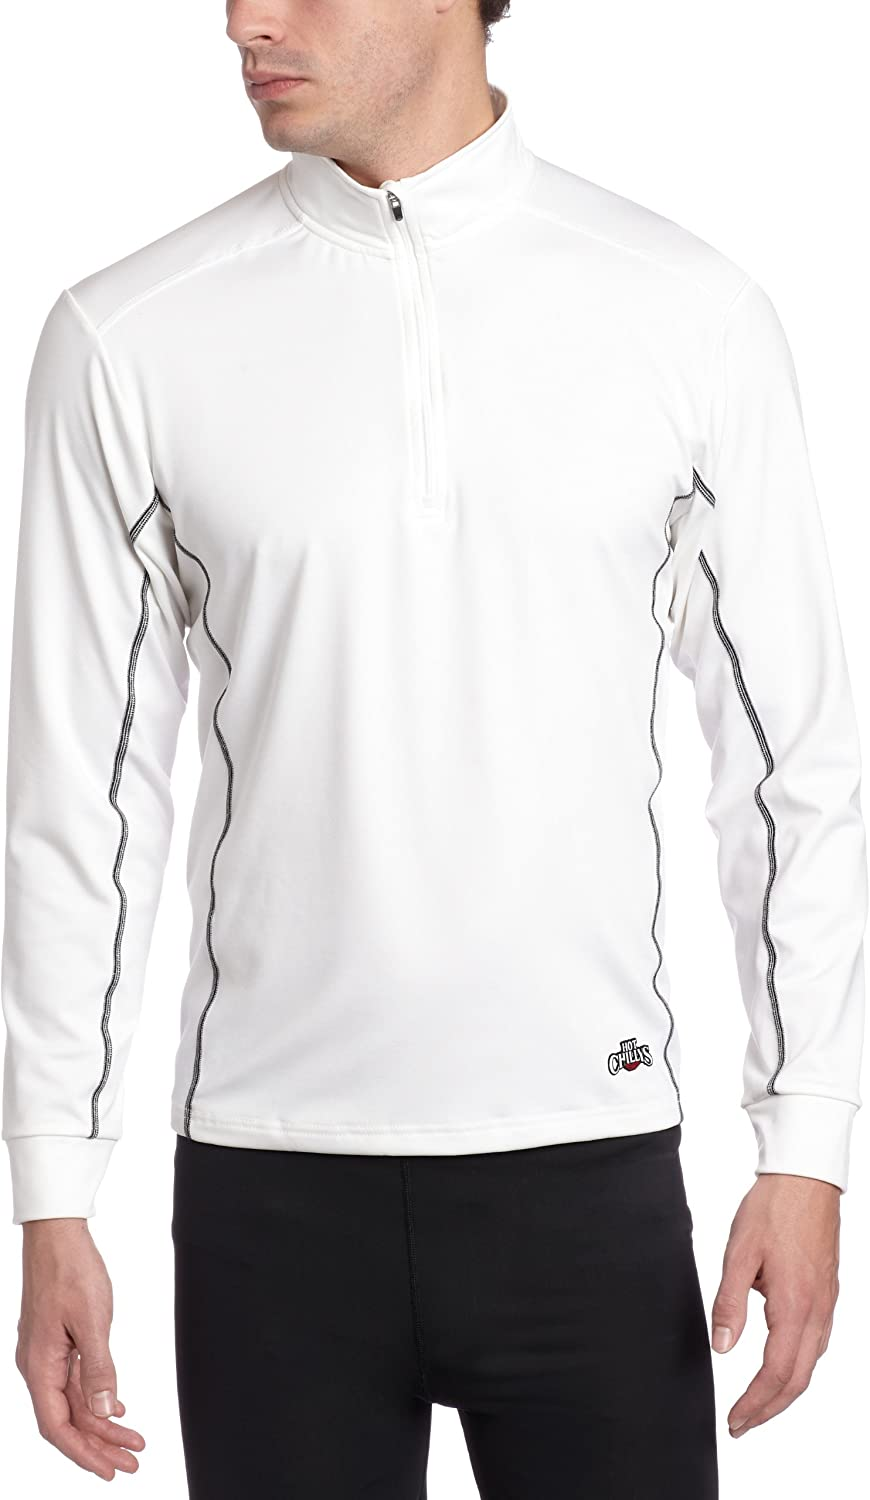 Hot Chillys Men's Mirco-Elite Zip-Tee Panel Popularity Chamois Inventory cleanup selling sale